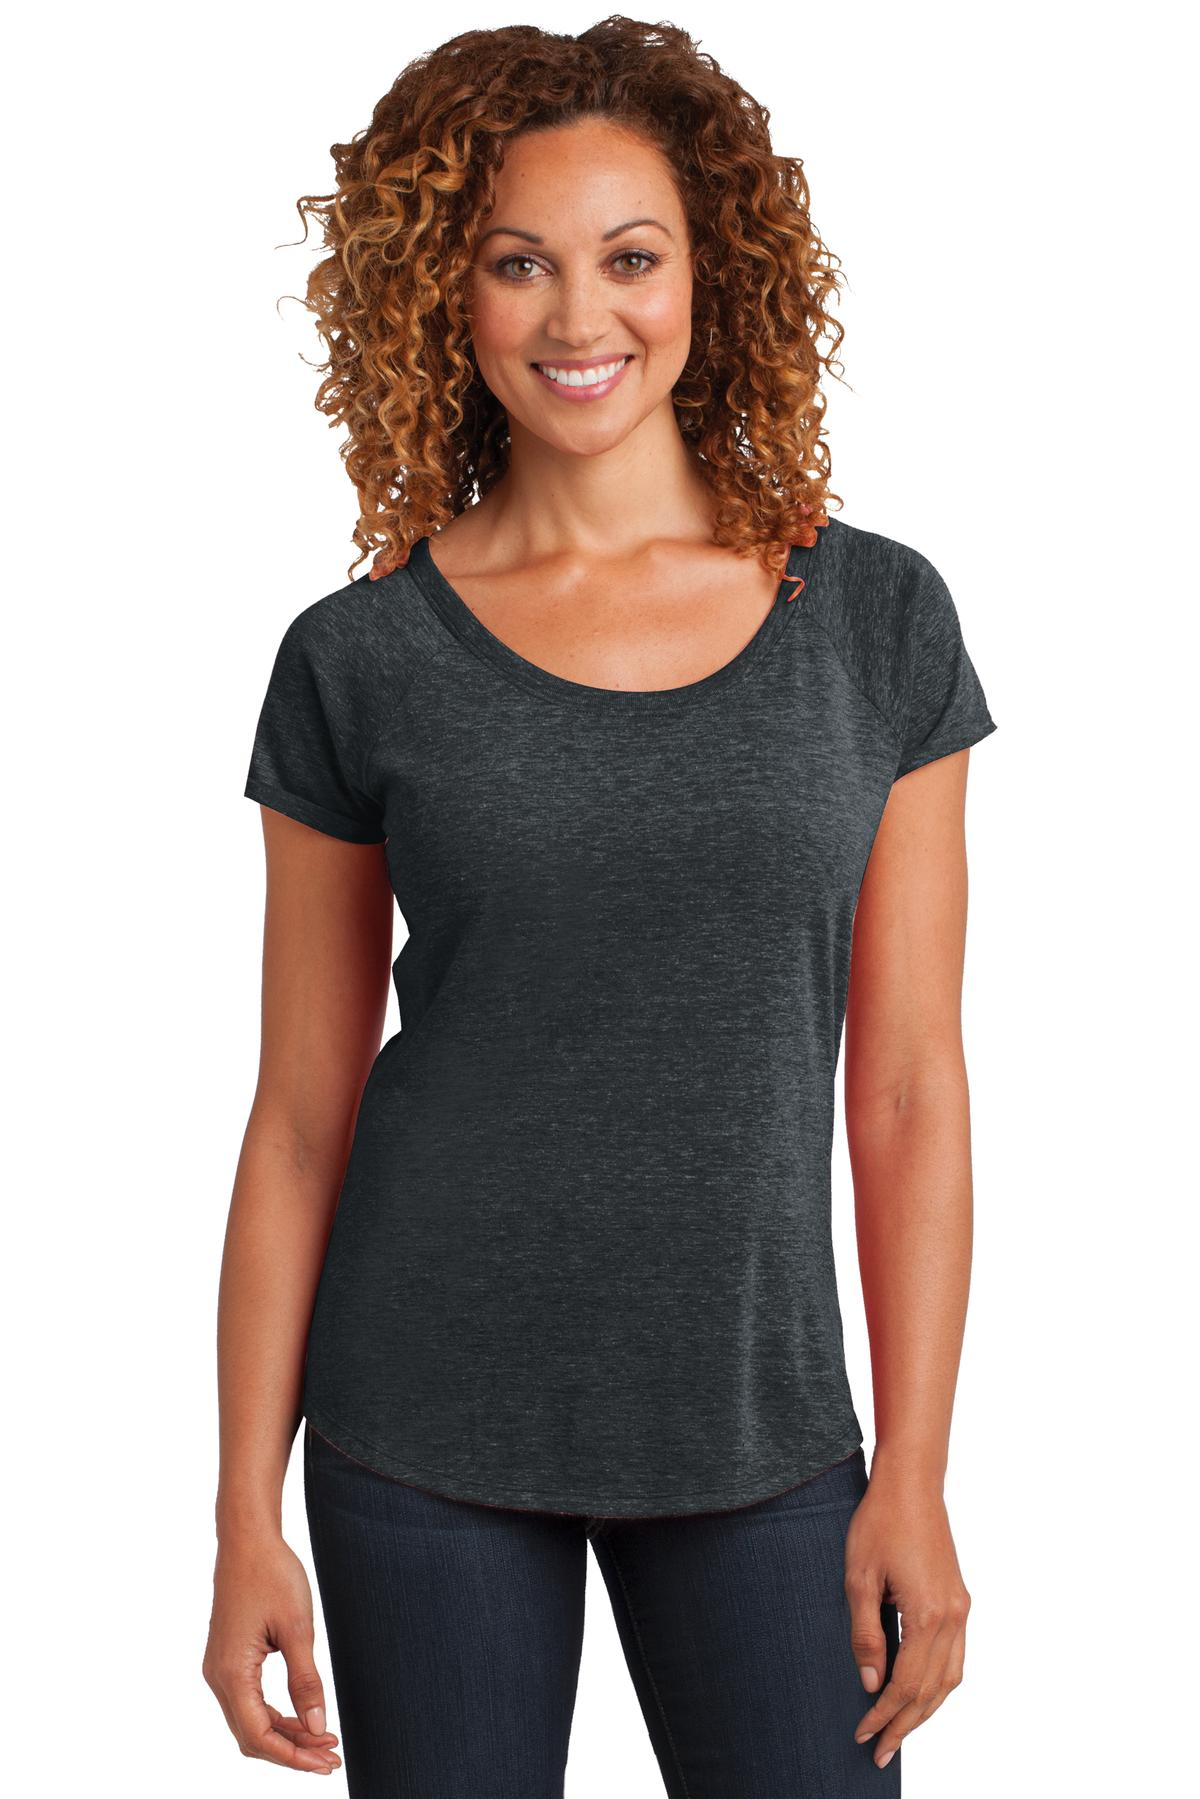 CLOSEOUT District Made Ladies Tri-Blend Scoop Tee. DM443